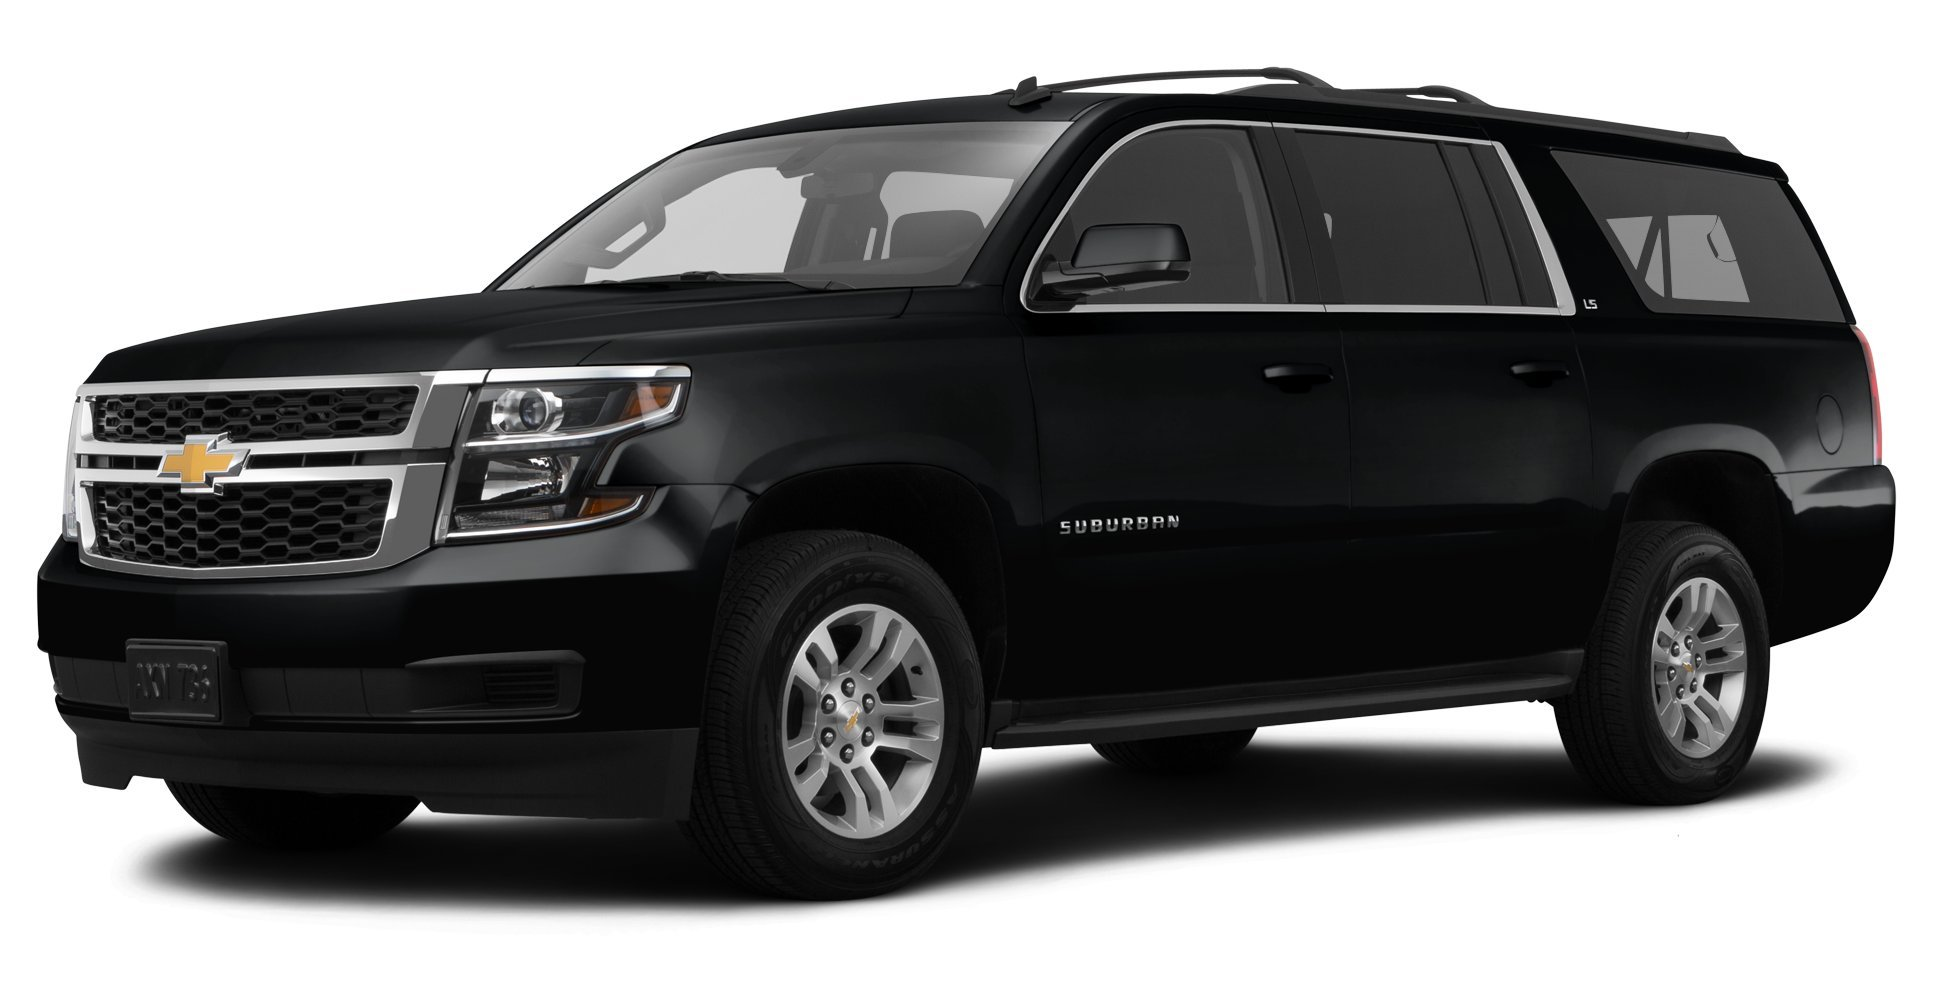 2016 chevrolet suburban reviews images and specs vehicles. Black Bedroom Furniture Sets. Home Design Ideas